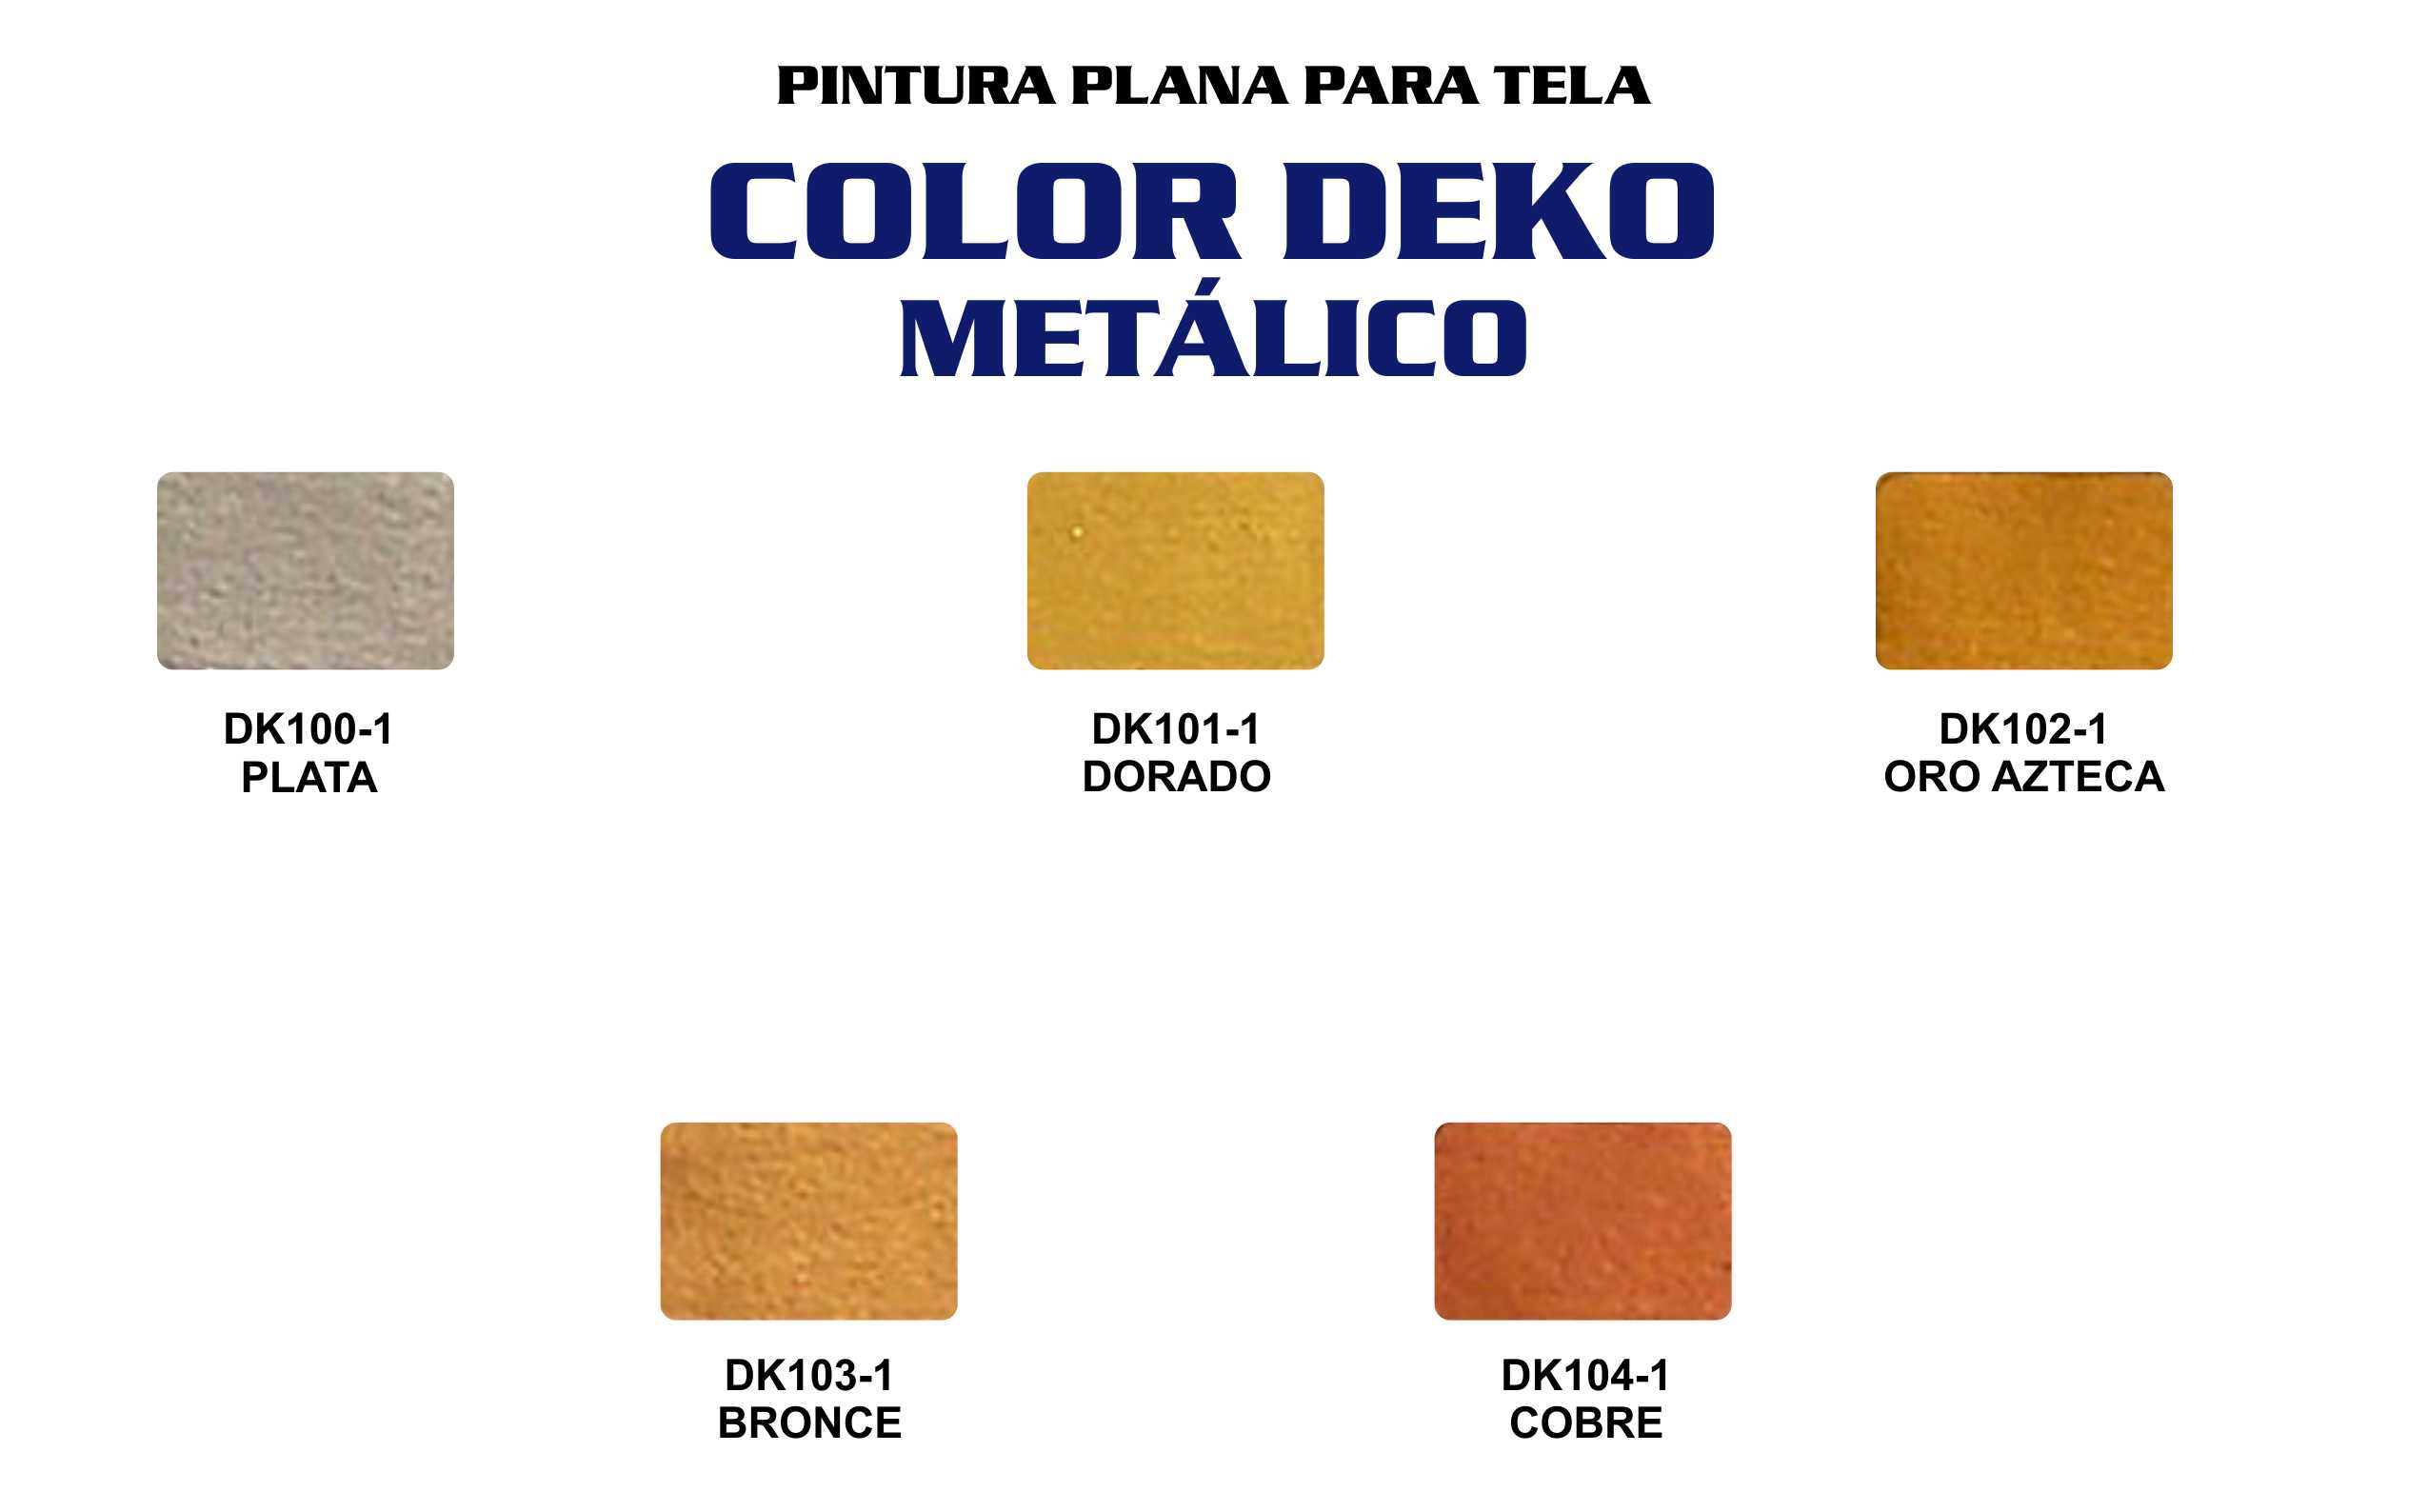 CARTA COLORES DEKO METALICO